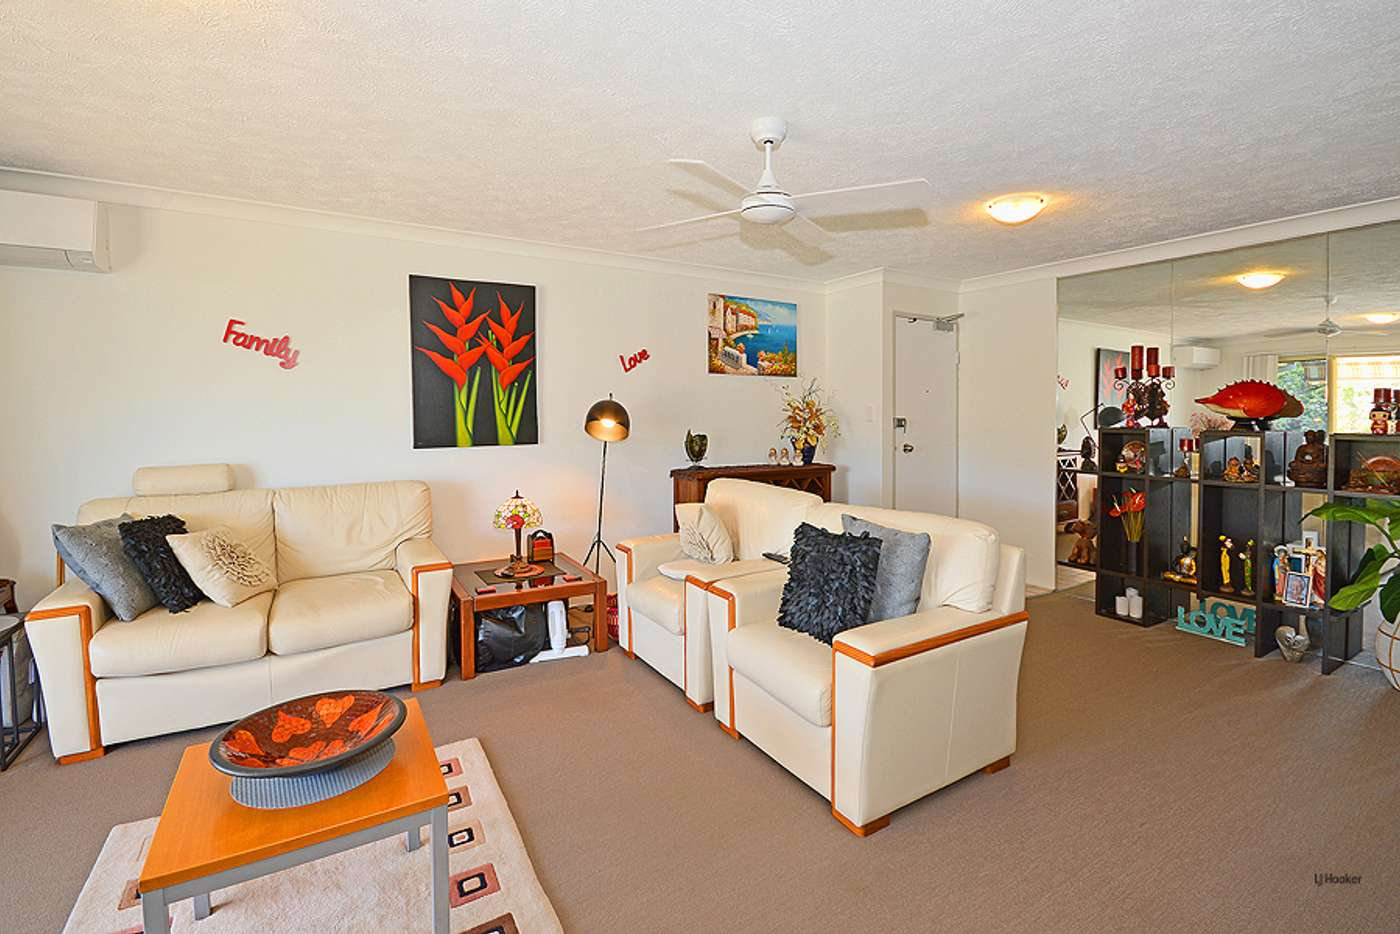 Fifth view of Homely unit listing, 18/4 Botany Crescent, Tweed Heads NSW 2485